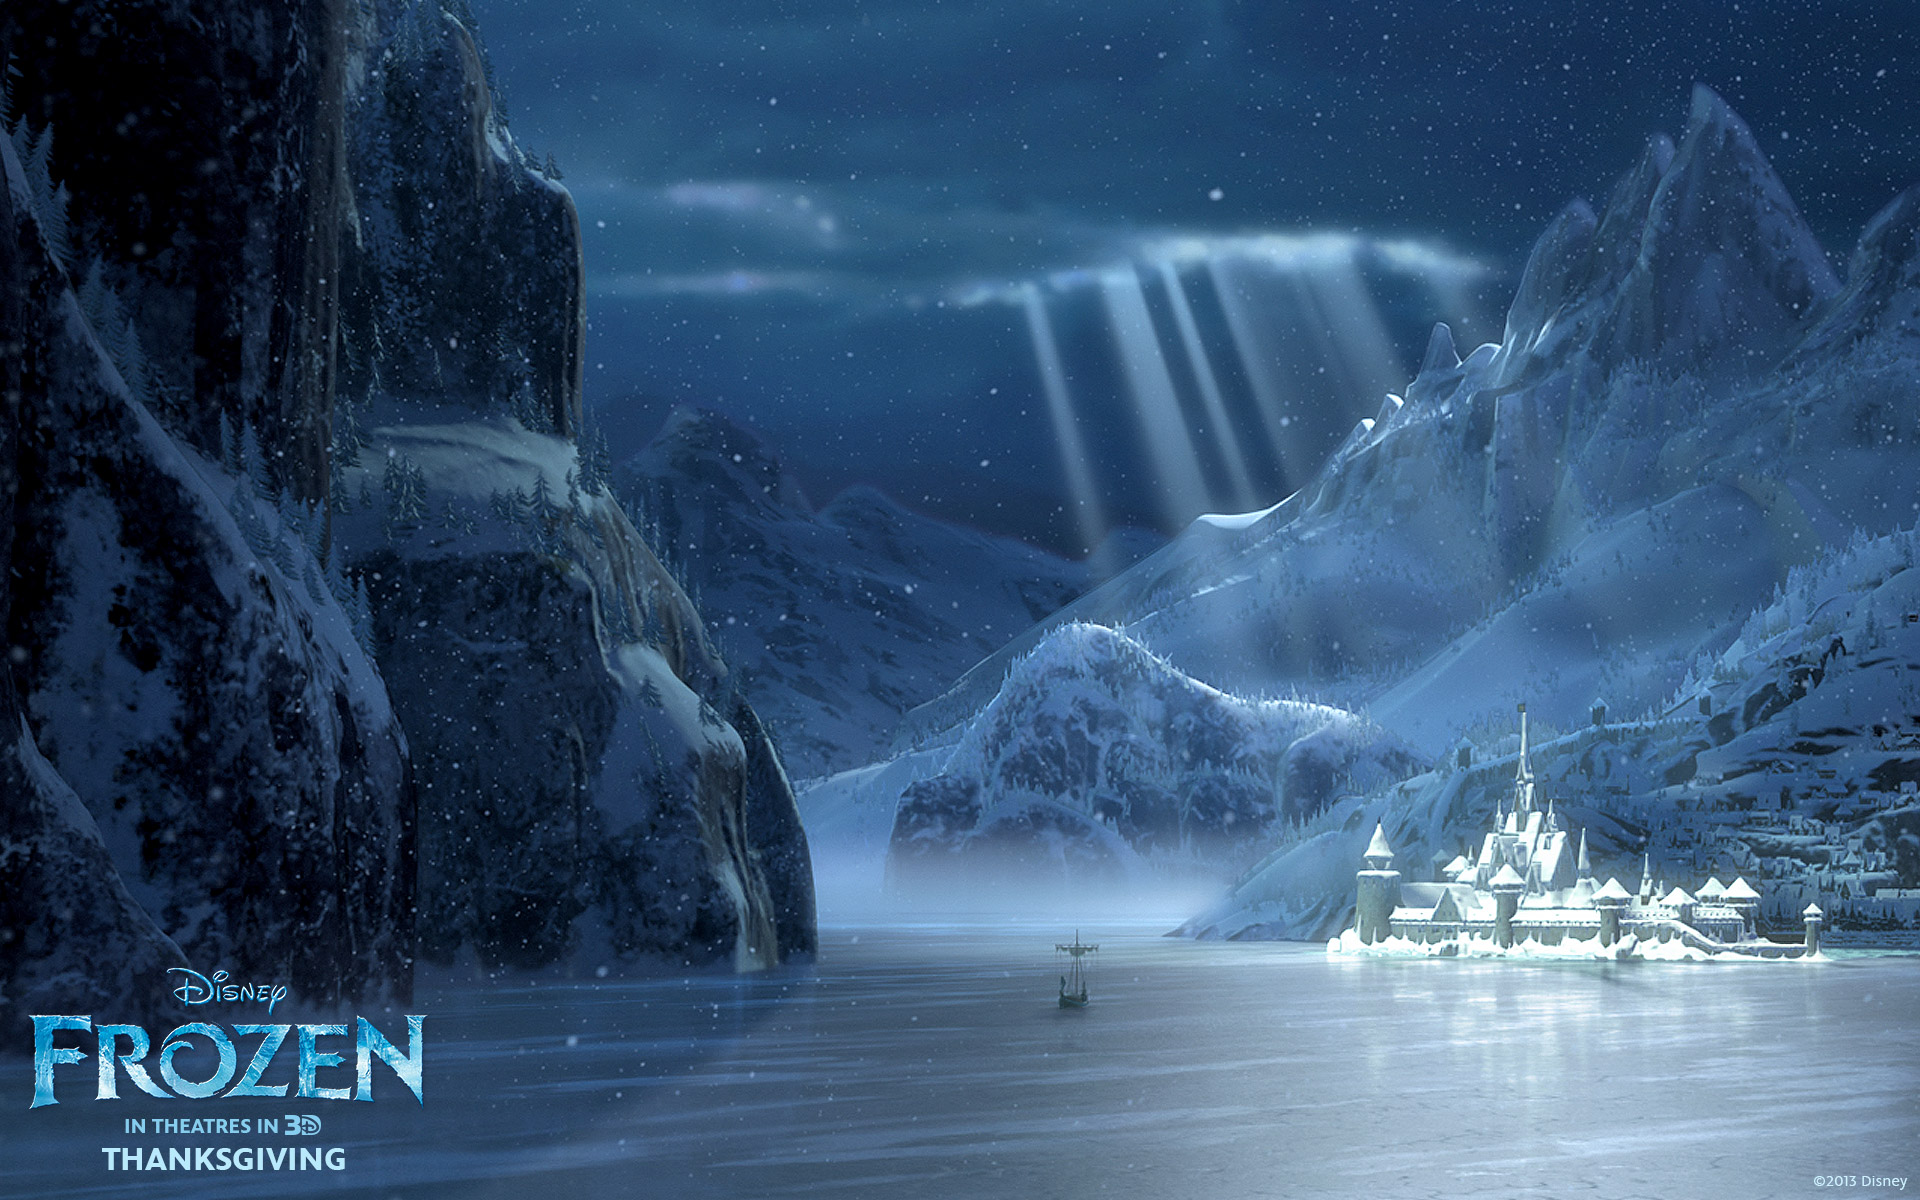 187 best images about Frozen on Pinterest | Disney, This weekend ...